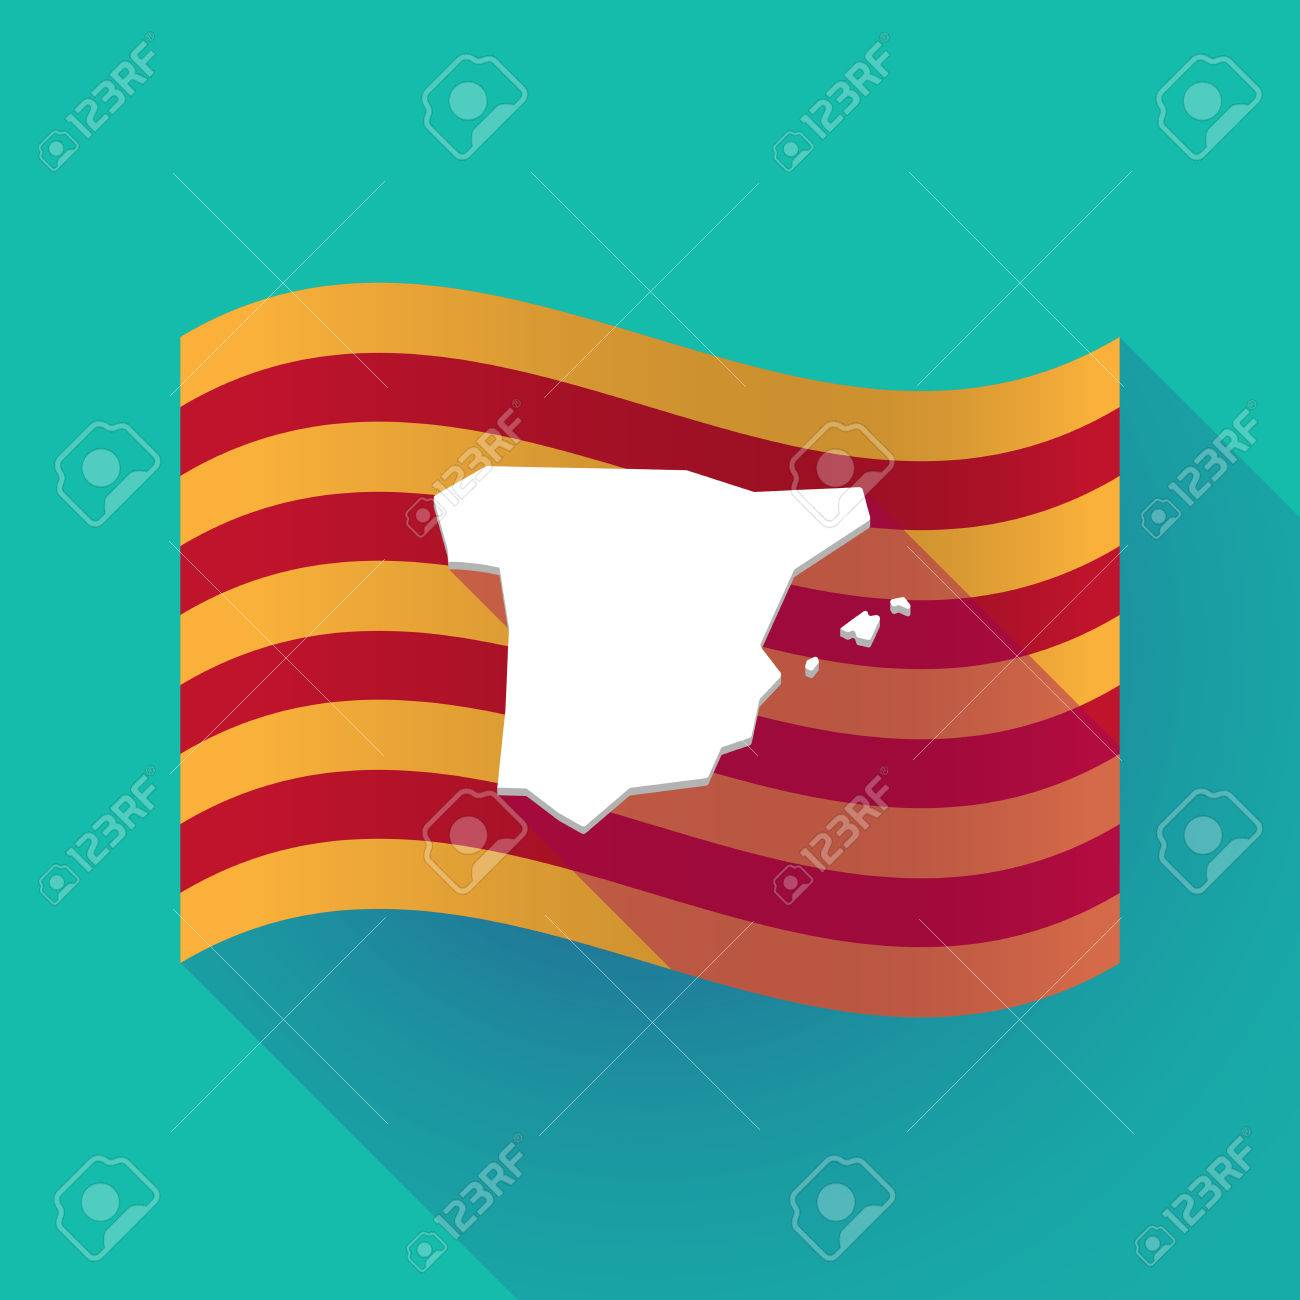 Catalonia Separation Spain Concept Map Graphs And Charts Templates - Caltrans traffic map